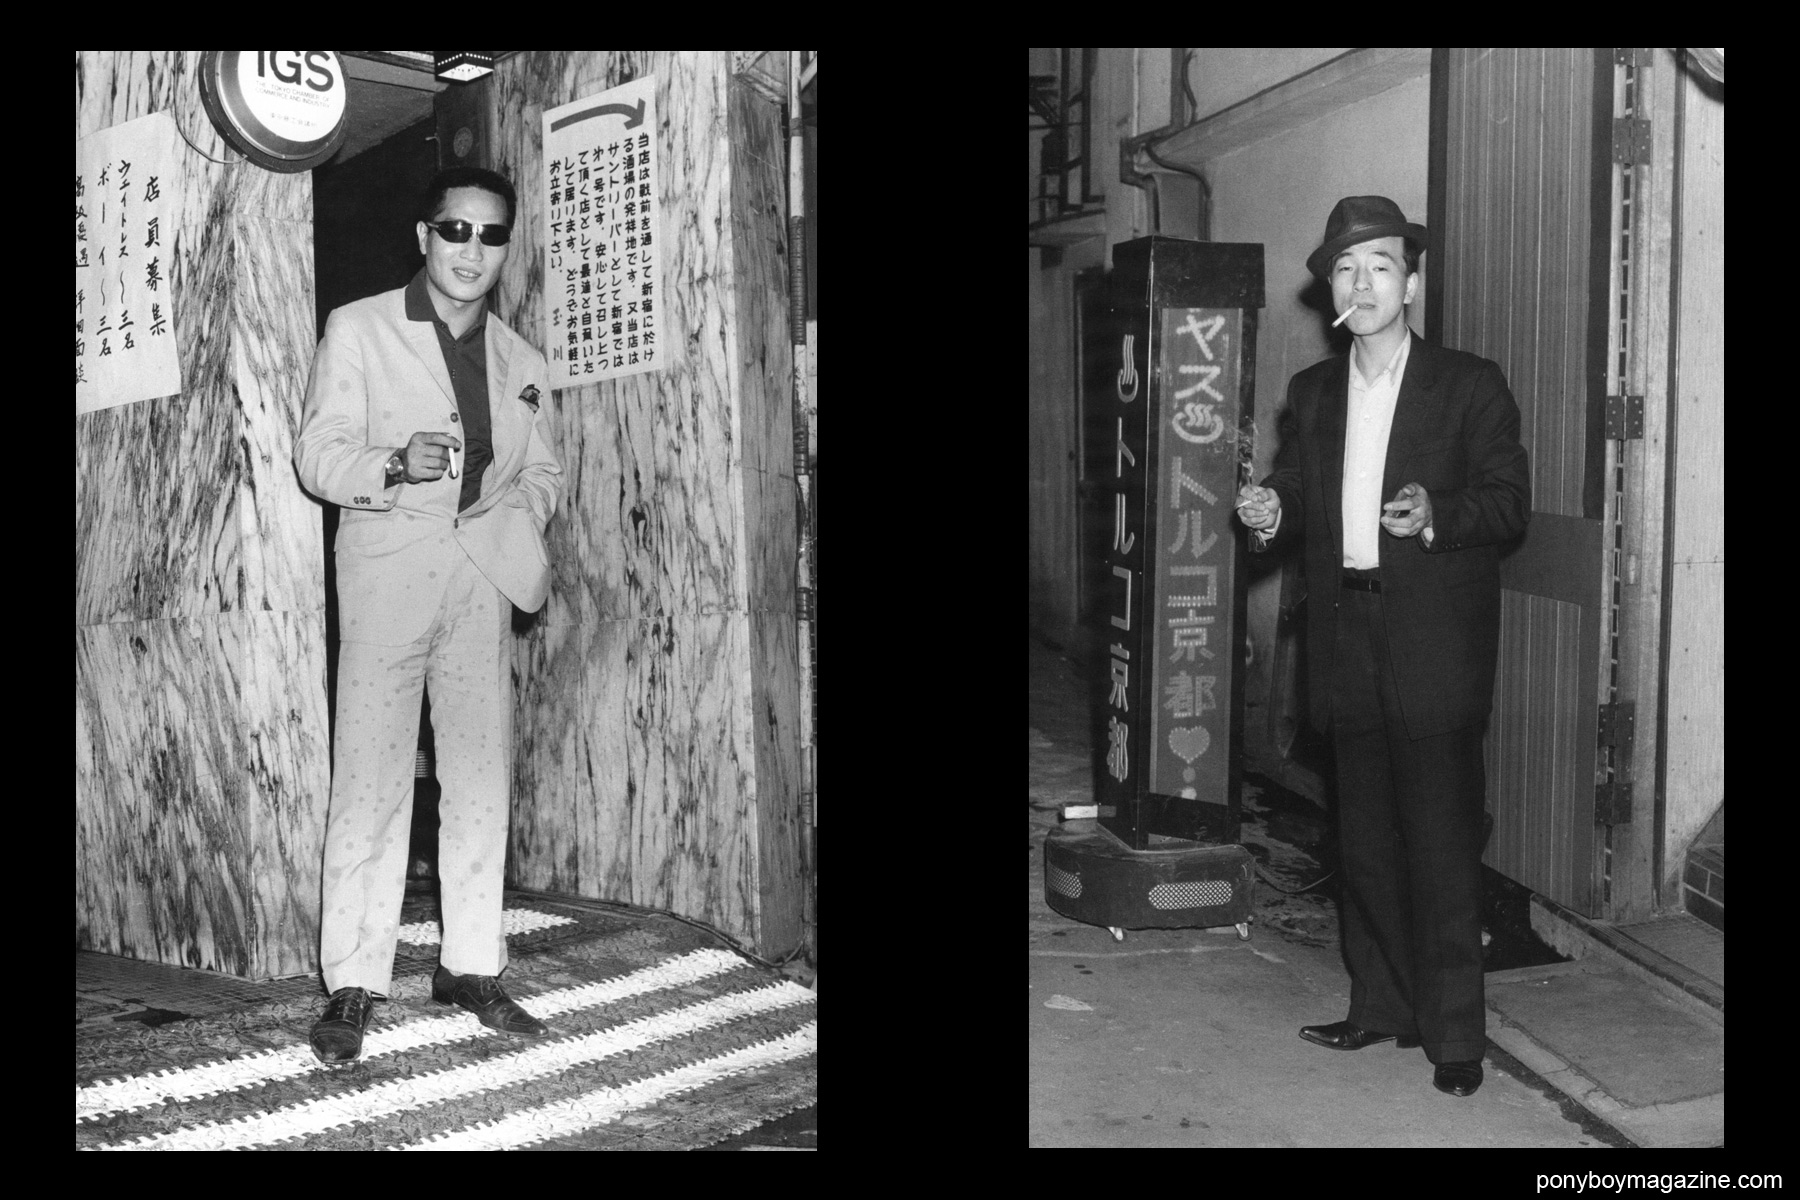 Japanese gang members in the book Gangs of Kabukicho by photographer Watanabe Katsumi.